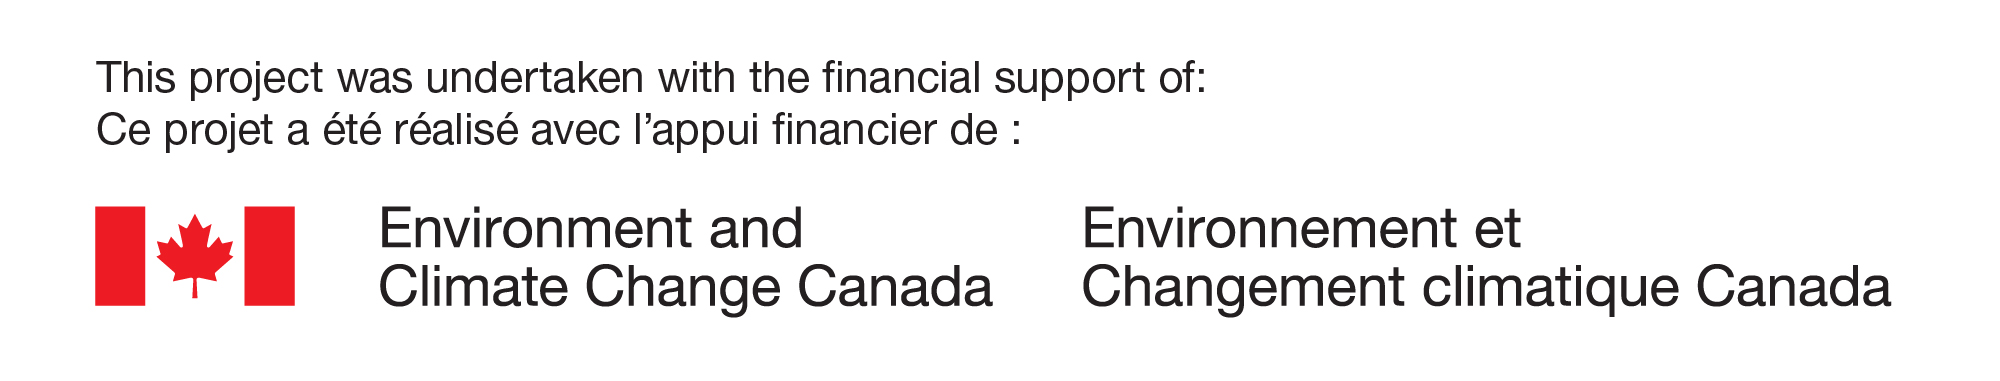 Environment and Climate Change Canada